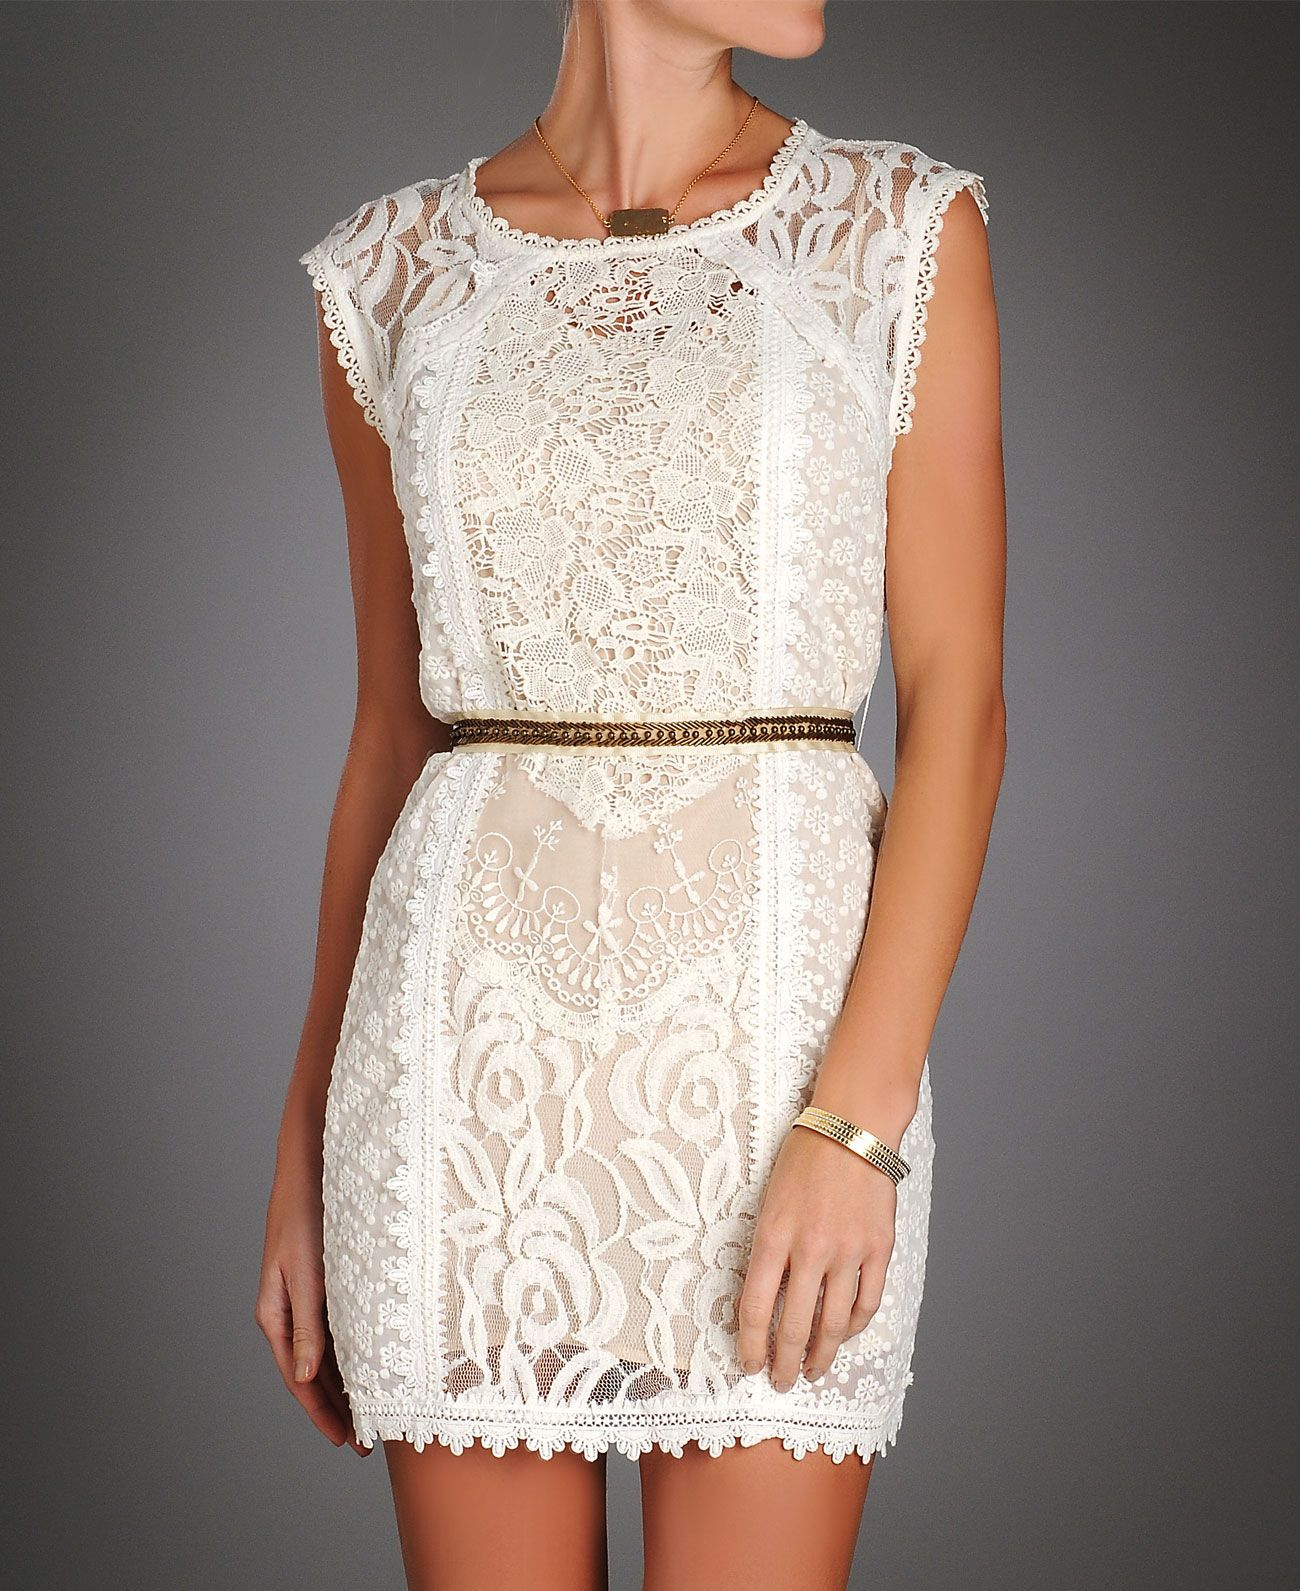 loving this little lace number